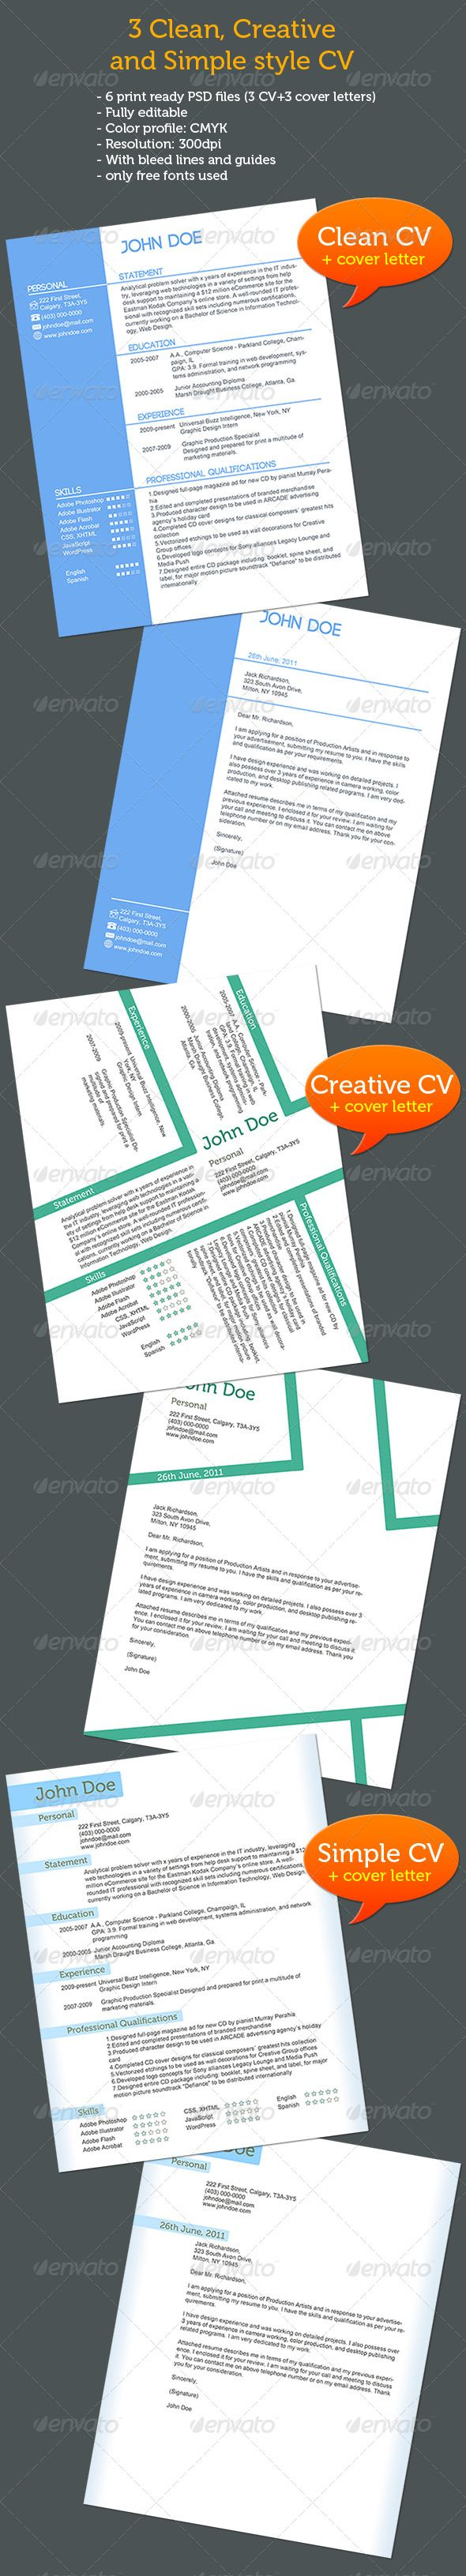 Beautiful 1 Year Experience Resume In Java J2ee Huge 10 Best Resume Samples Shaped 10 Tips For Writing A Good Resume 10 Window Envelope Template Youthful 100 Dollar Bill Template Red2 Page Resume Layout 86 Best Images About Print Templates On Pinterest | Fonts, Flyer ..